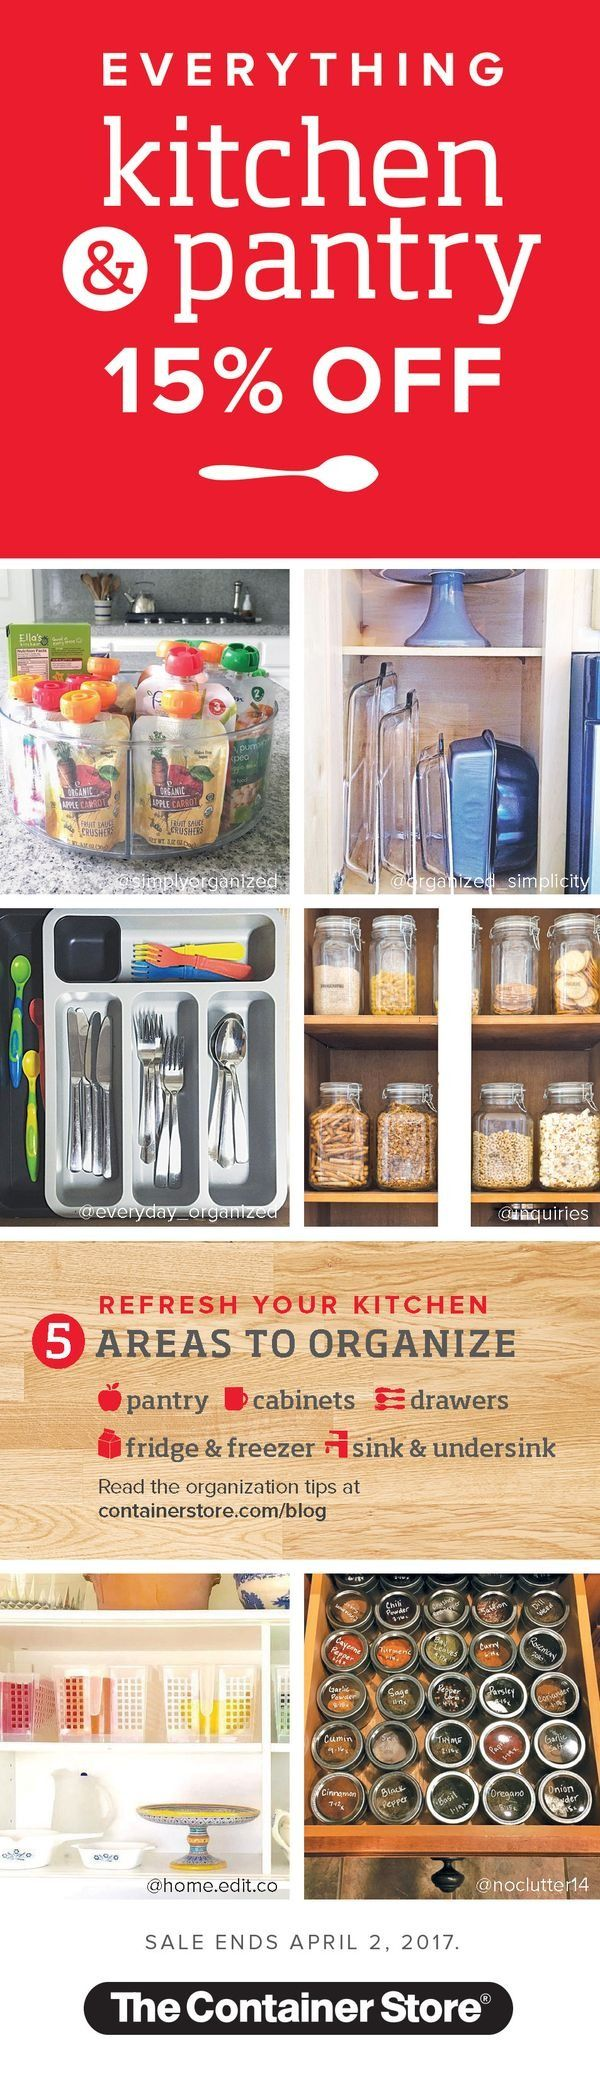 600 best kitchen organization images on pinterest | kitchen